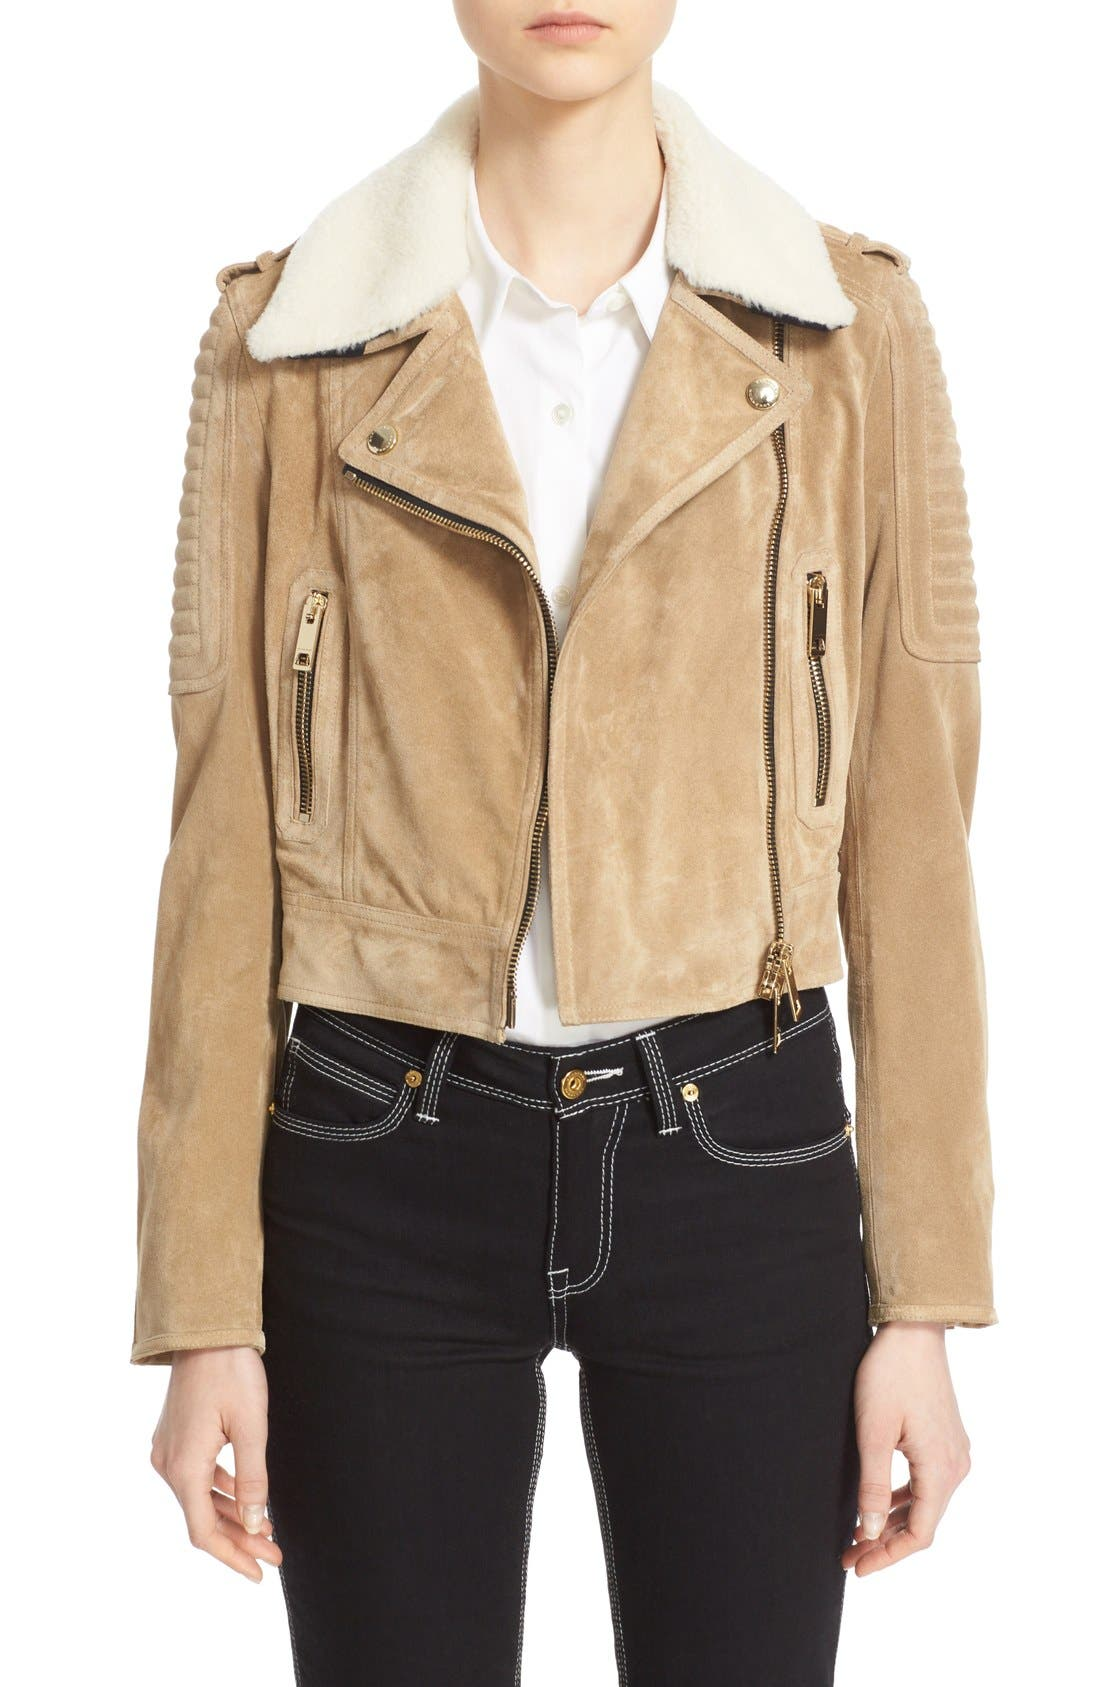 Main Image - Burberry 'Peakhurst' Suede Biker Jacket with Removable Genuine Shearling Collar